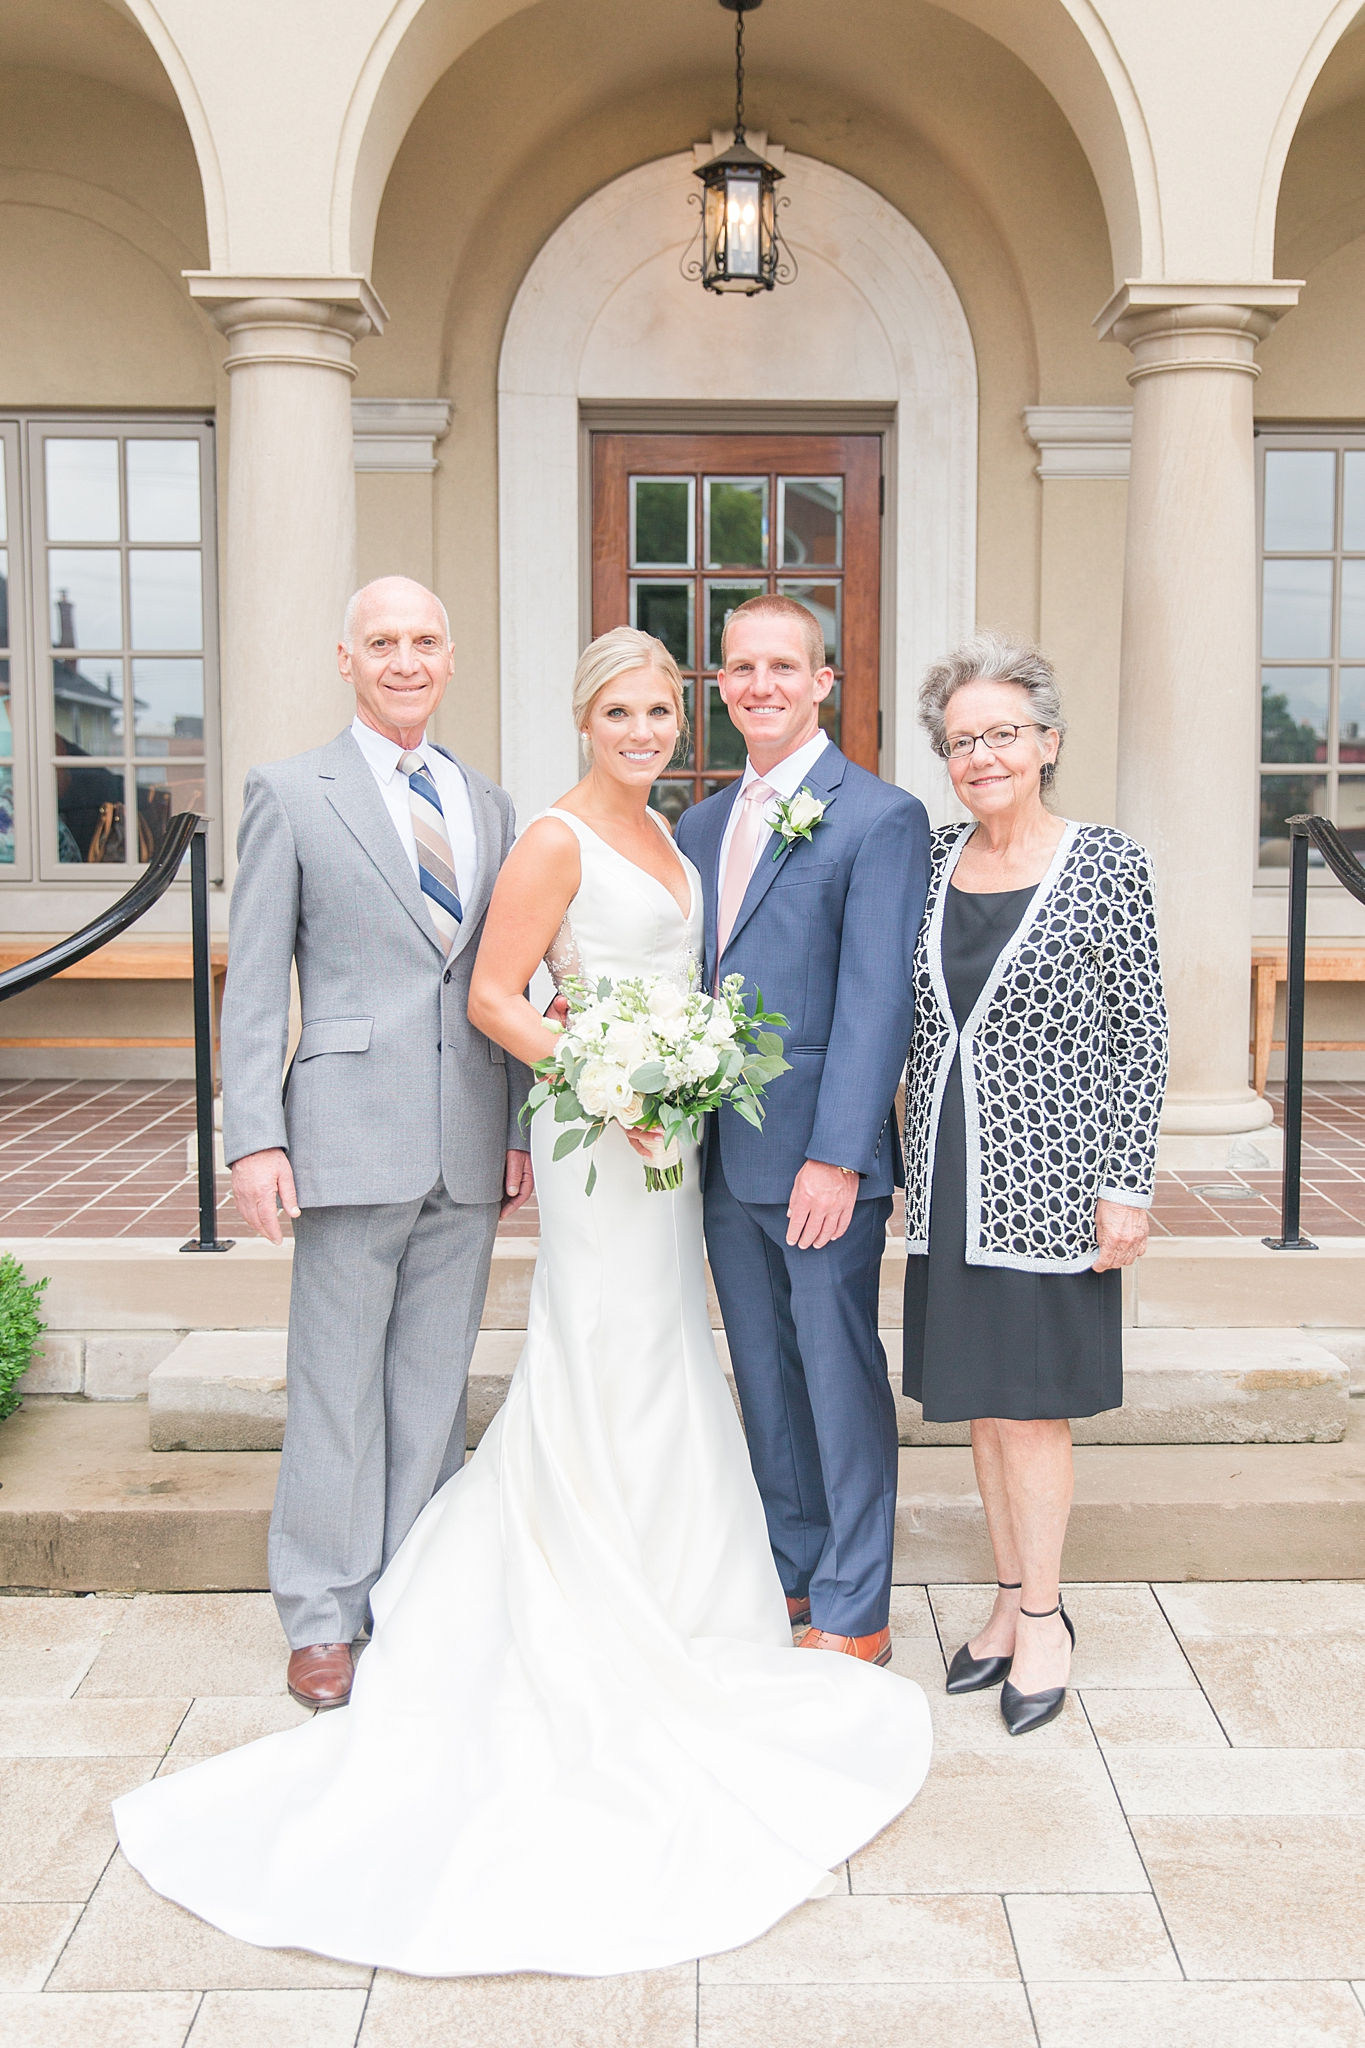 chapman-house-casually-chic-wedding-photography-in-rochester-michigan-by-courtney-carolyn-photography_0029.jpg